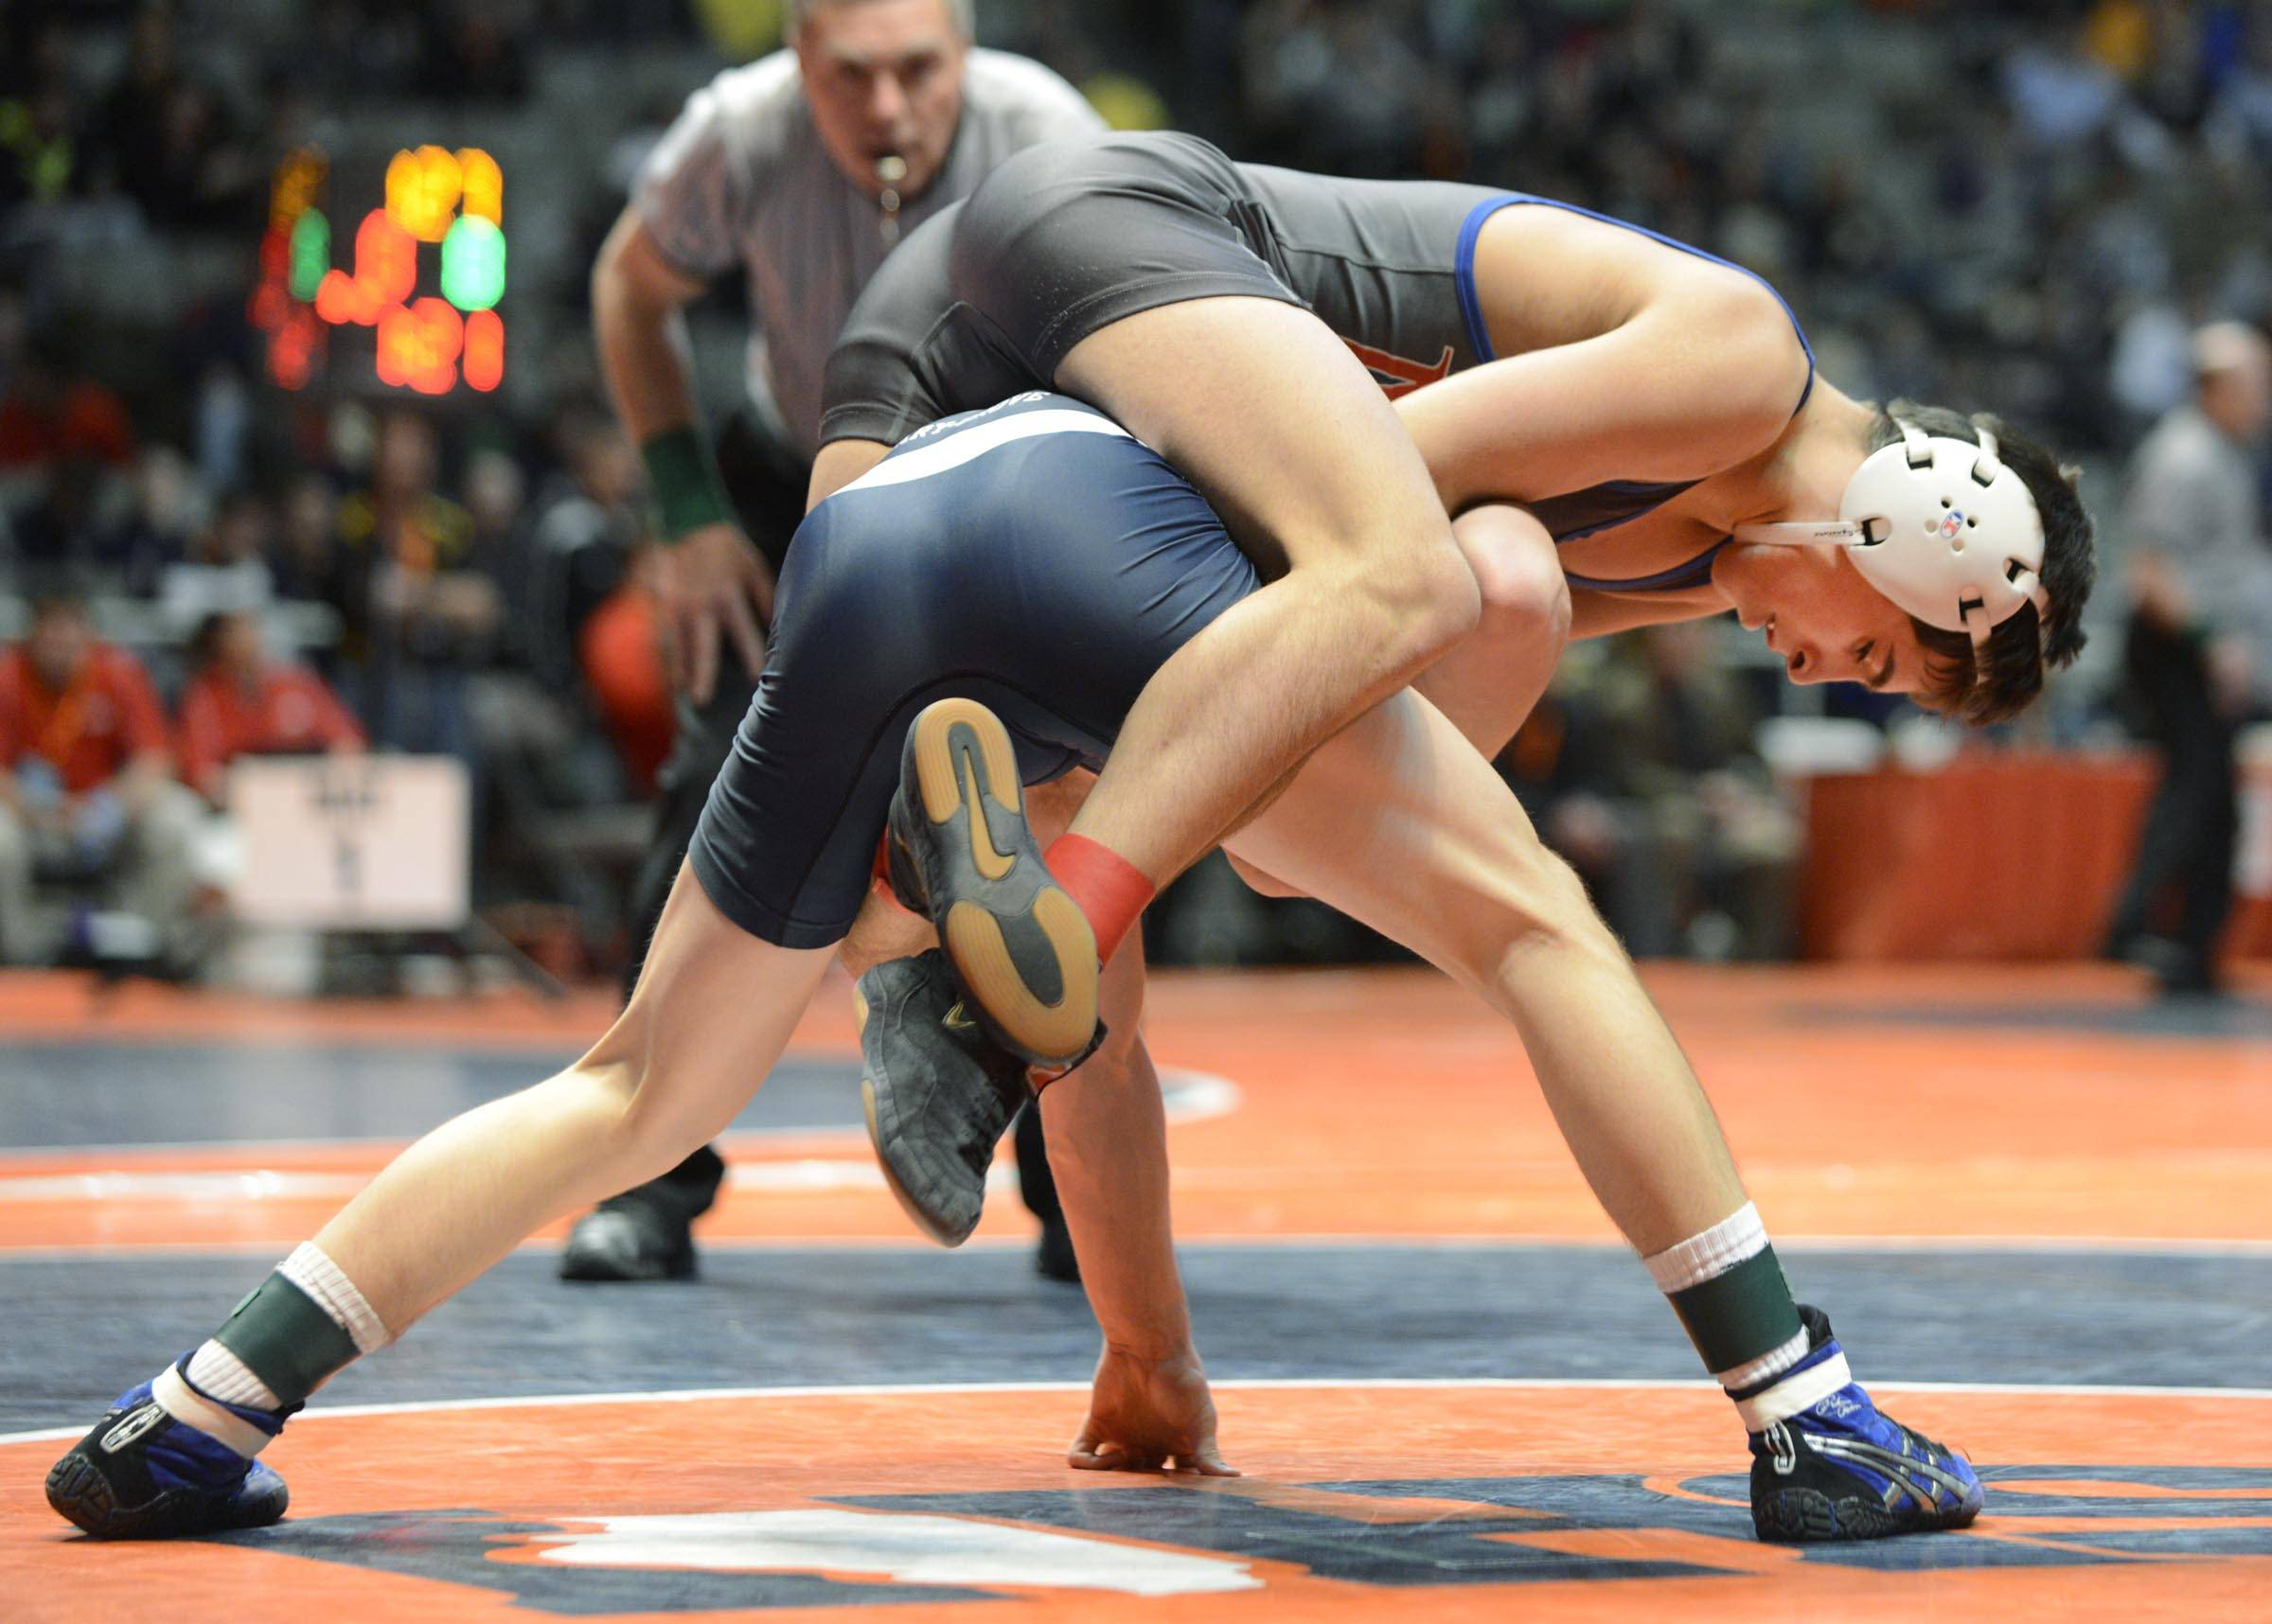 John Starks/jstarks@dailyherald.comMarmion Academy's AJ Jaffe rides Cary-Grove's Michael Cullen Friday in quarterfinals of the 120-pound weight class of the 3A IHSA state tournament at the University of Illinois in Champaign. Cullen won.